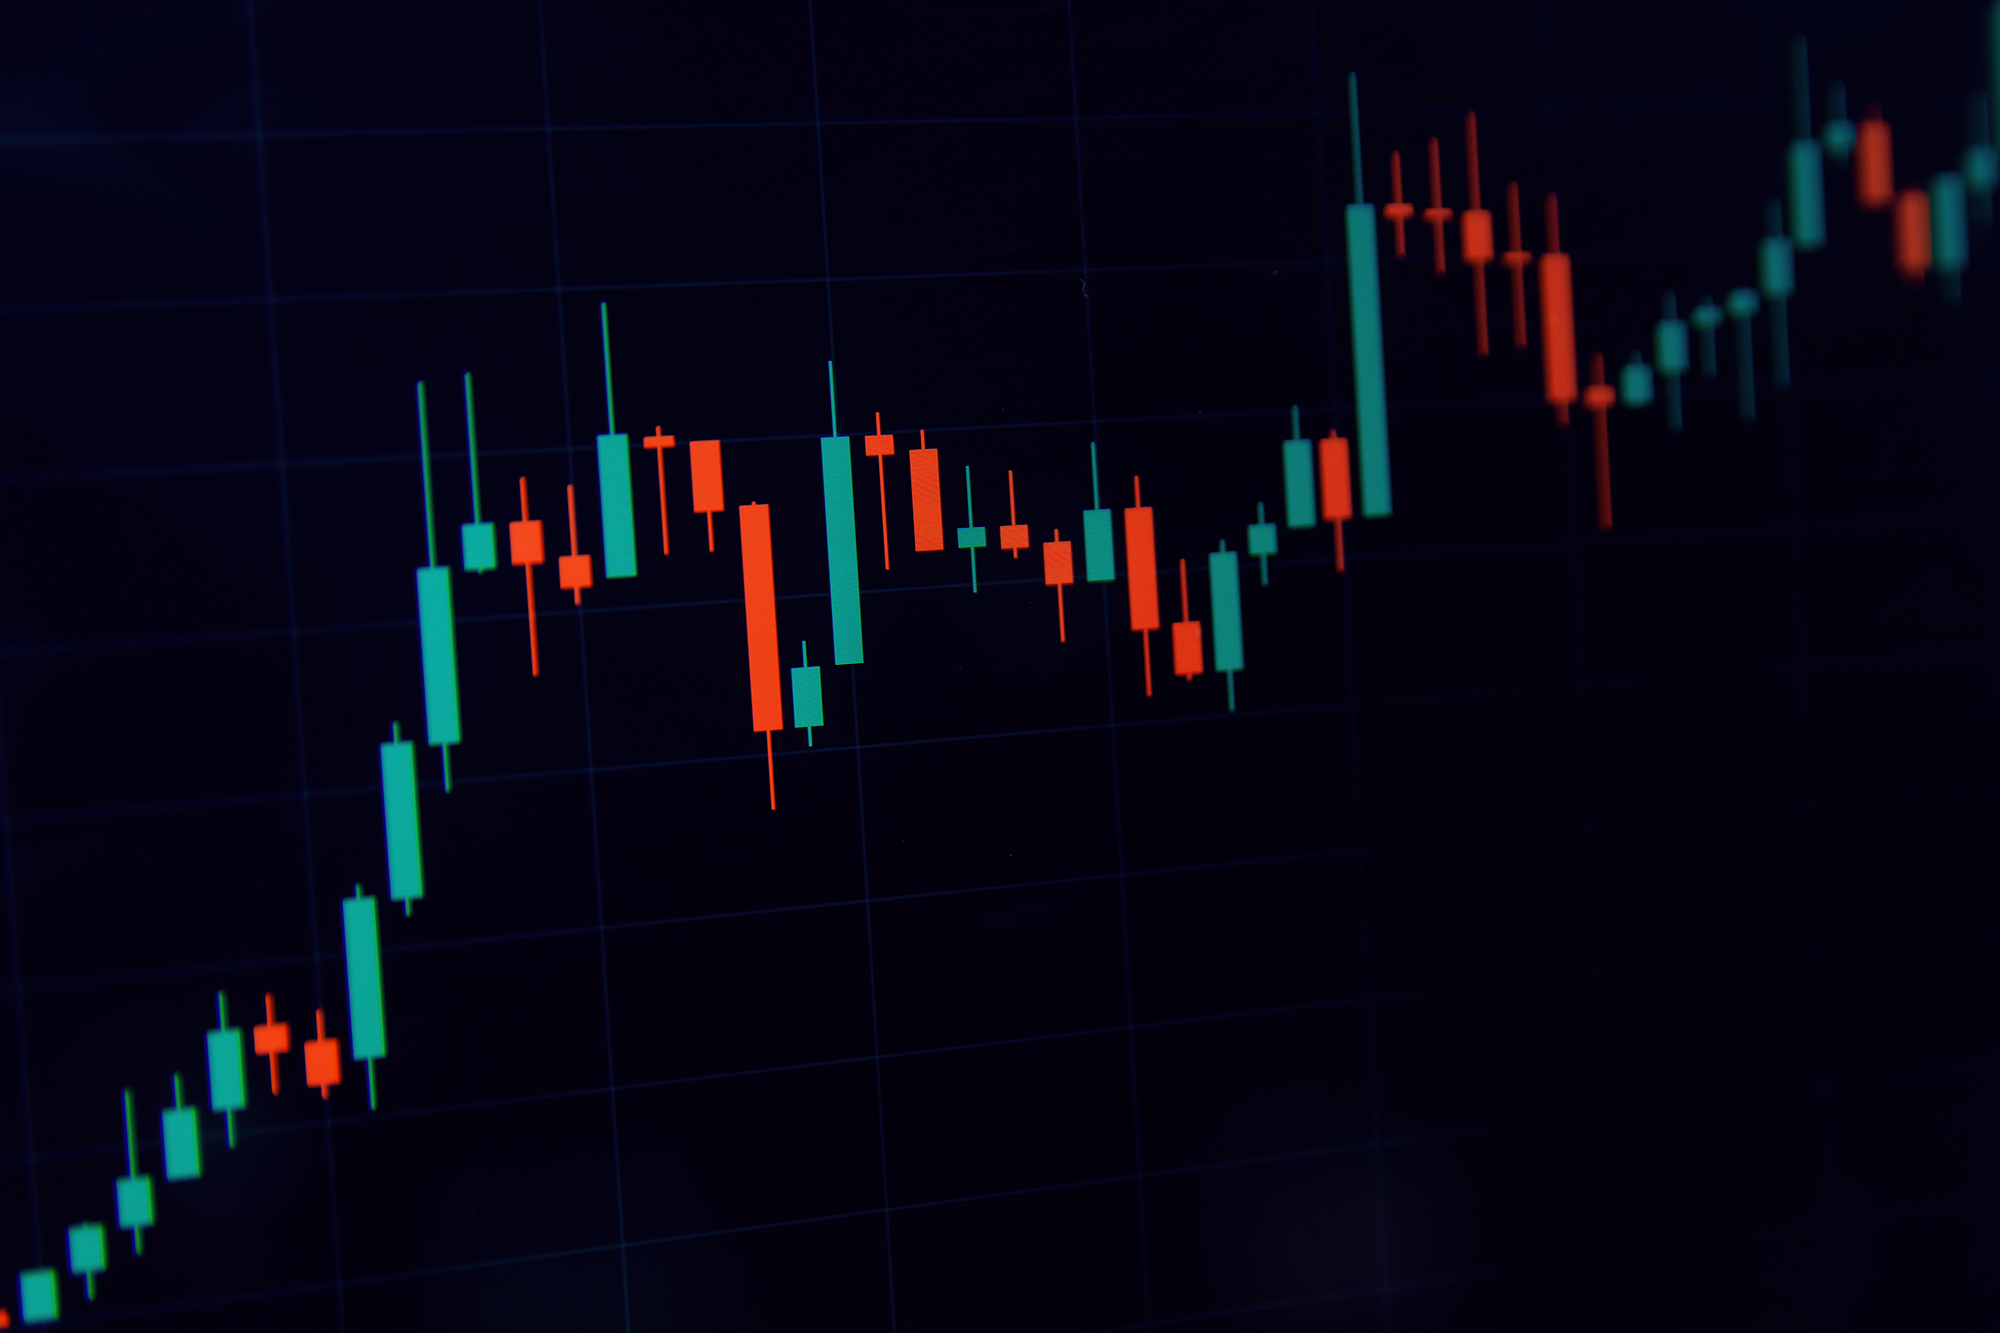 Purpose of Candlestick Pattern in the Stock Market